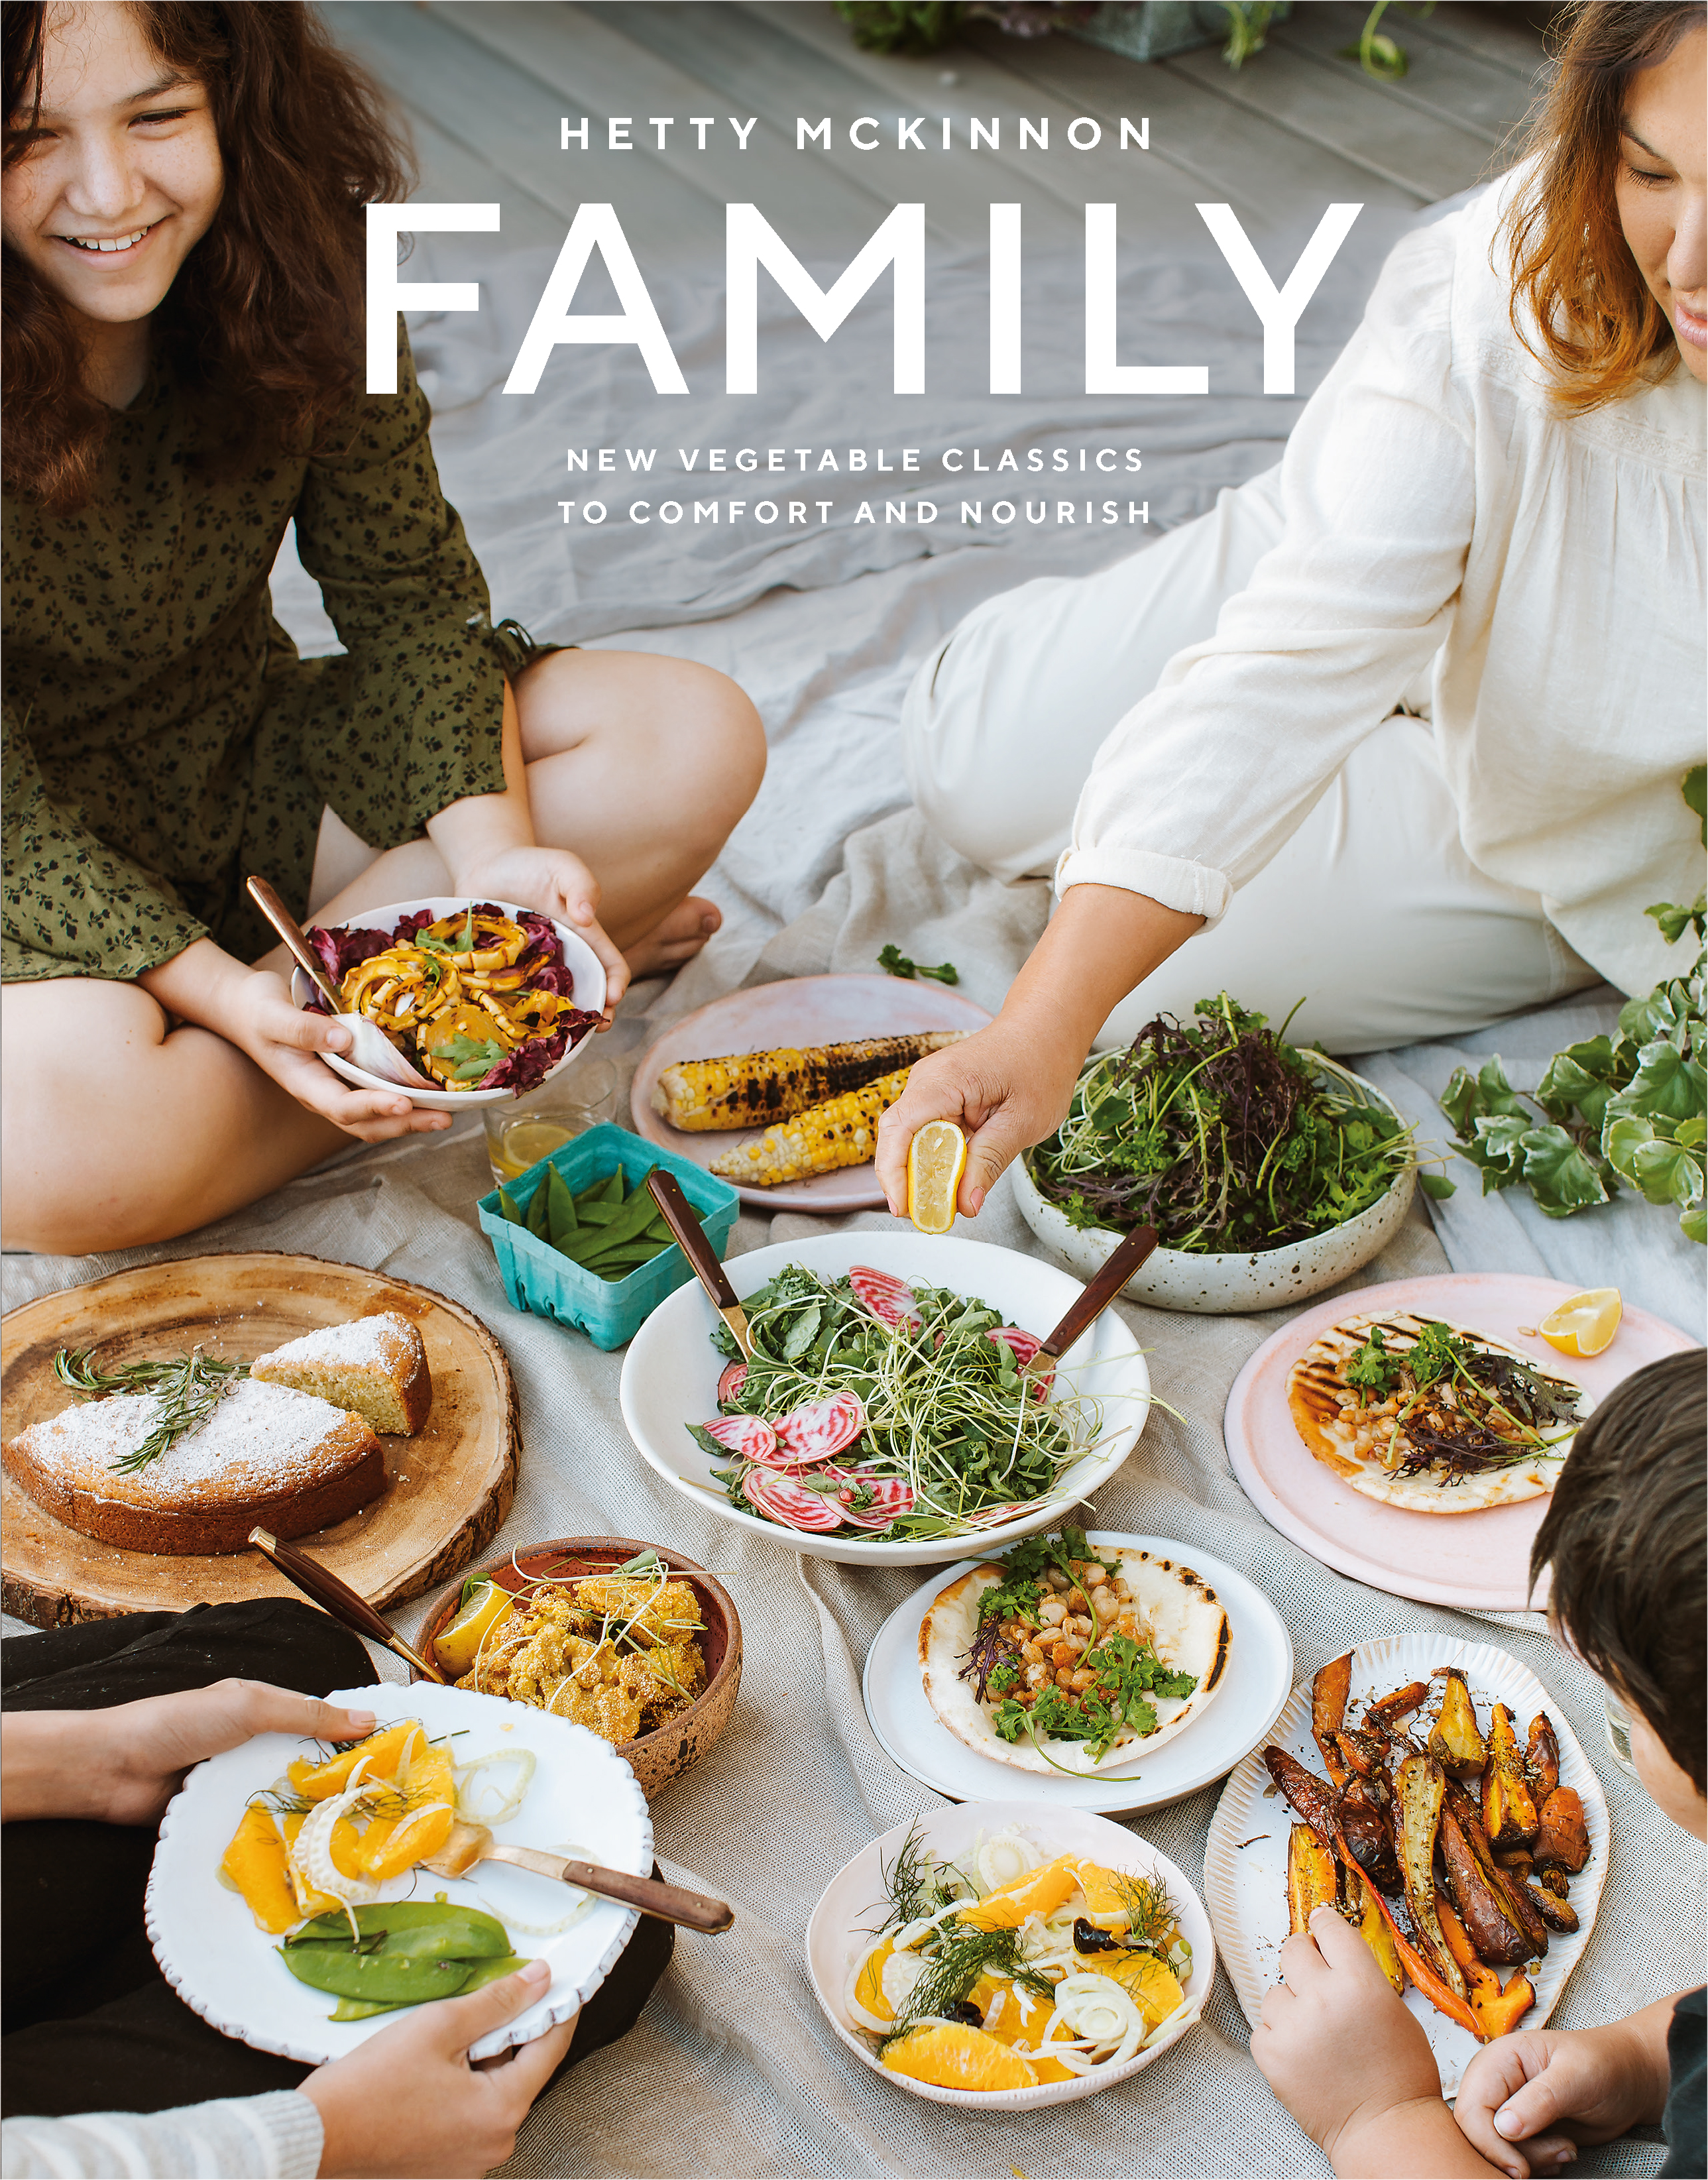 Family: New Vegetable Classics to Comfort and Nourish by Hetty McKinnon, ISBN: 9781760554576